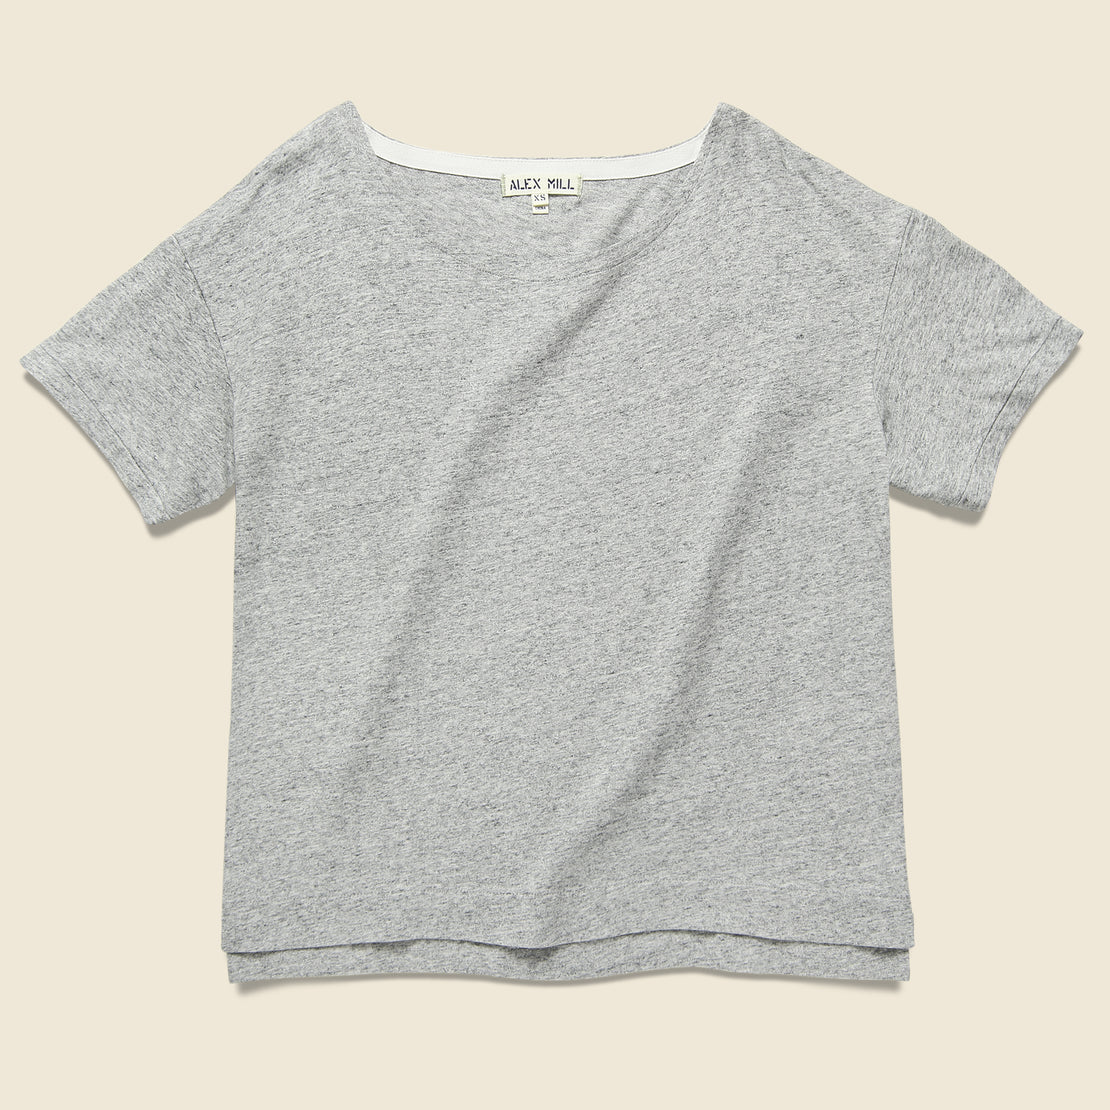 Alex Mill Slub Boxy Boatneck Tee - Heather Grey